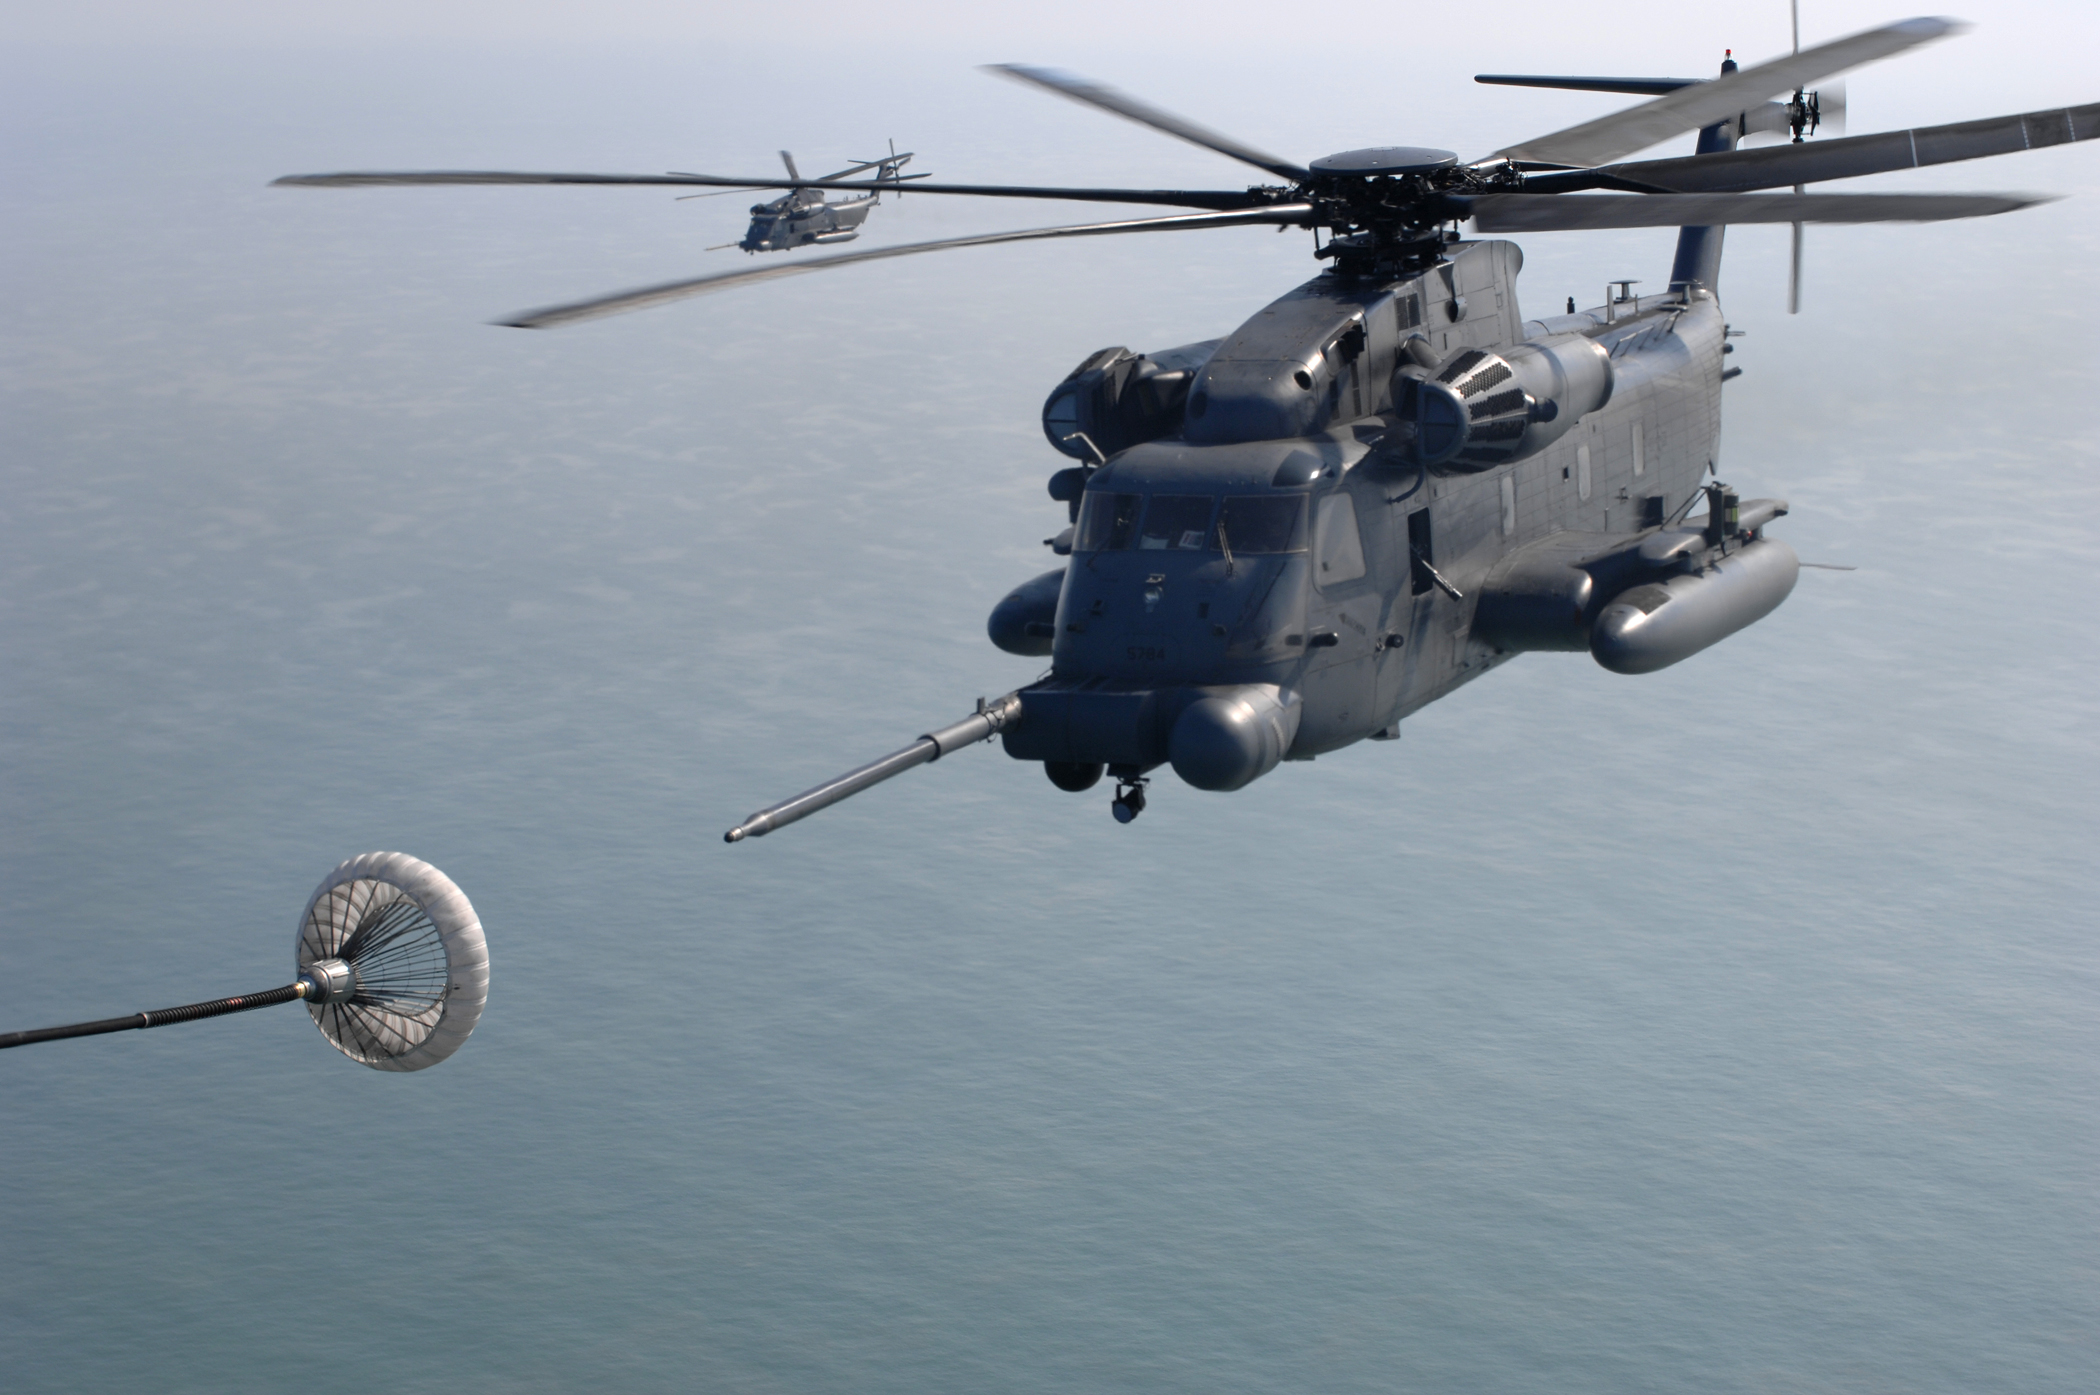 Mid-air refueling of Blackhawk helicopter | Aviation and space ...